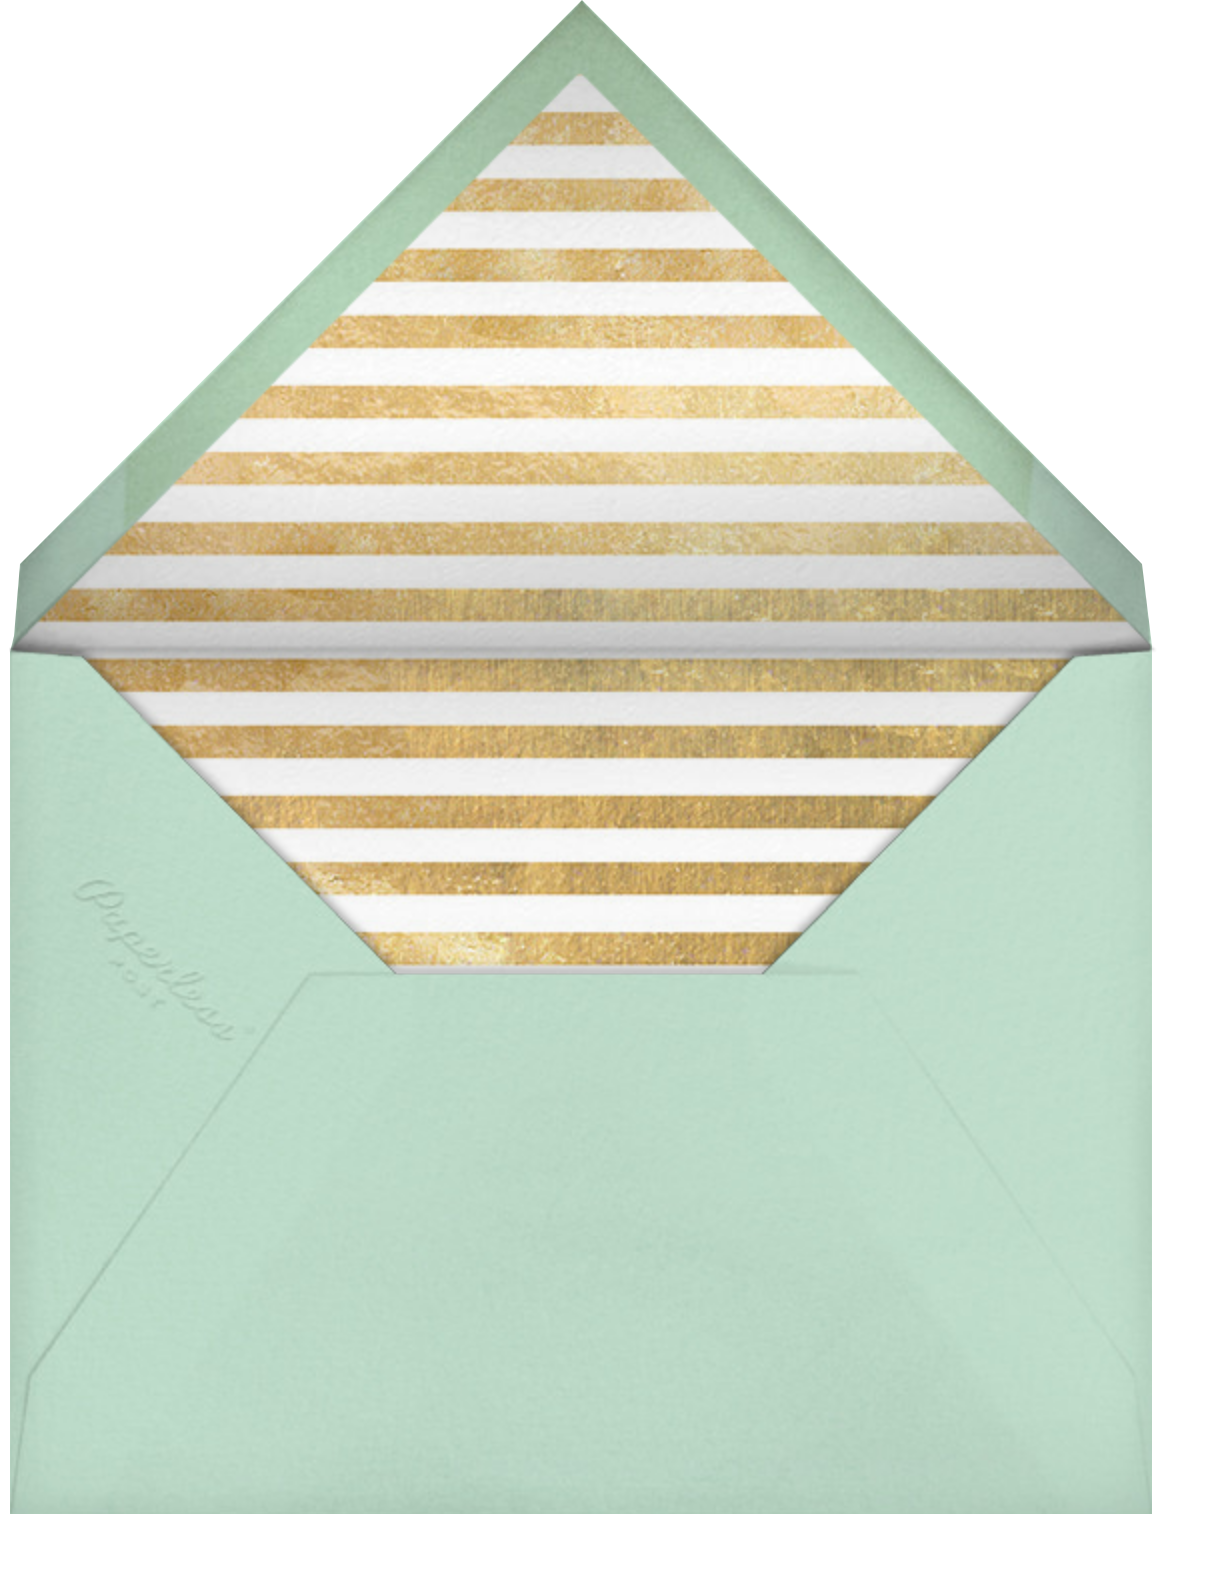 Decade Photo (Sixty) - Gold - Paperless Post - Adult birthday - envelope back